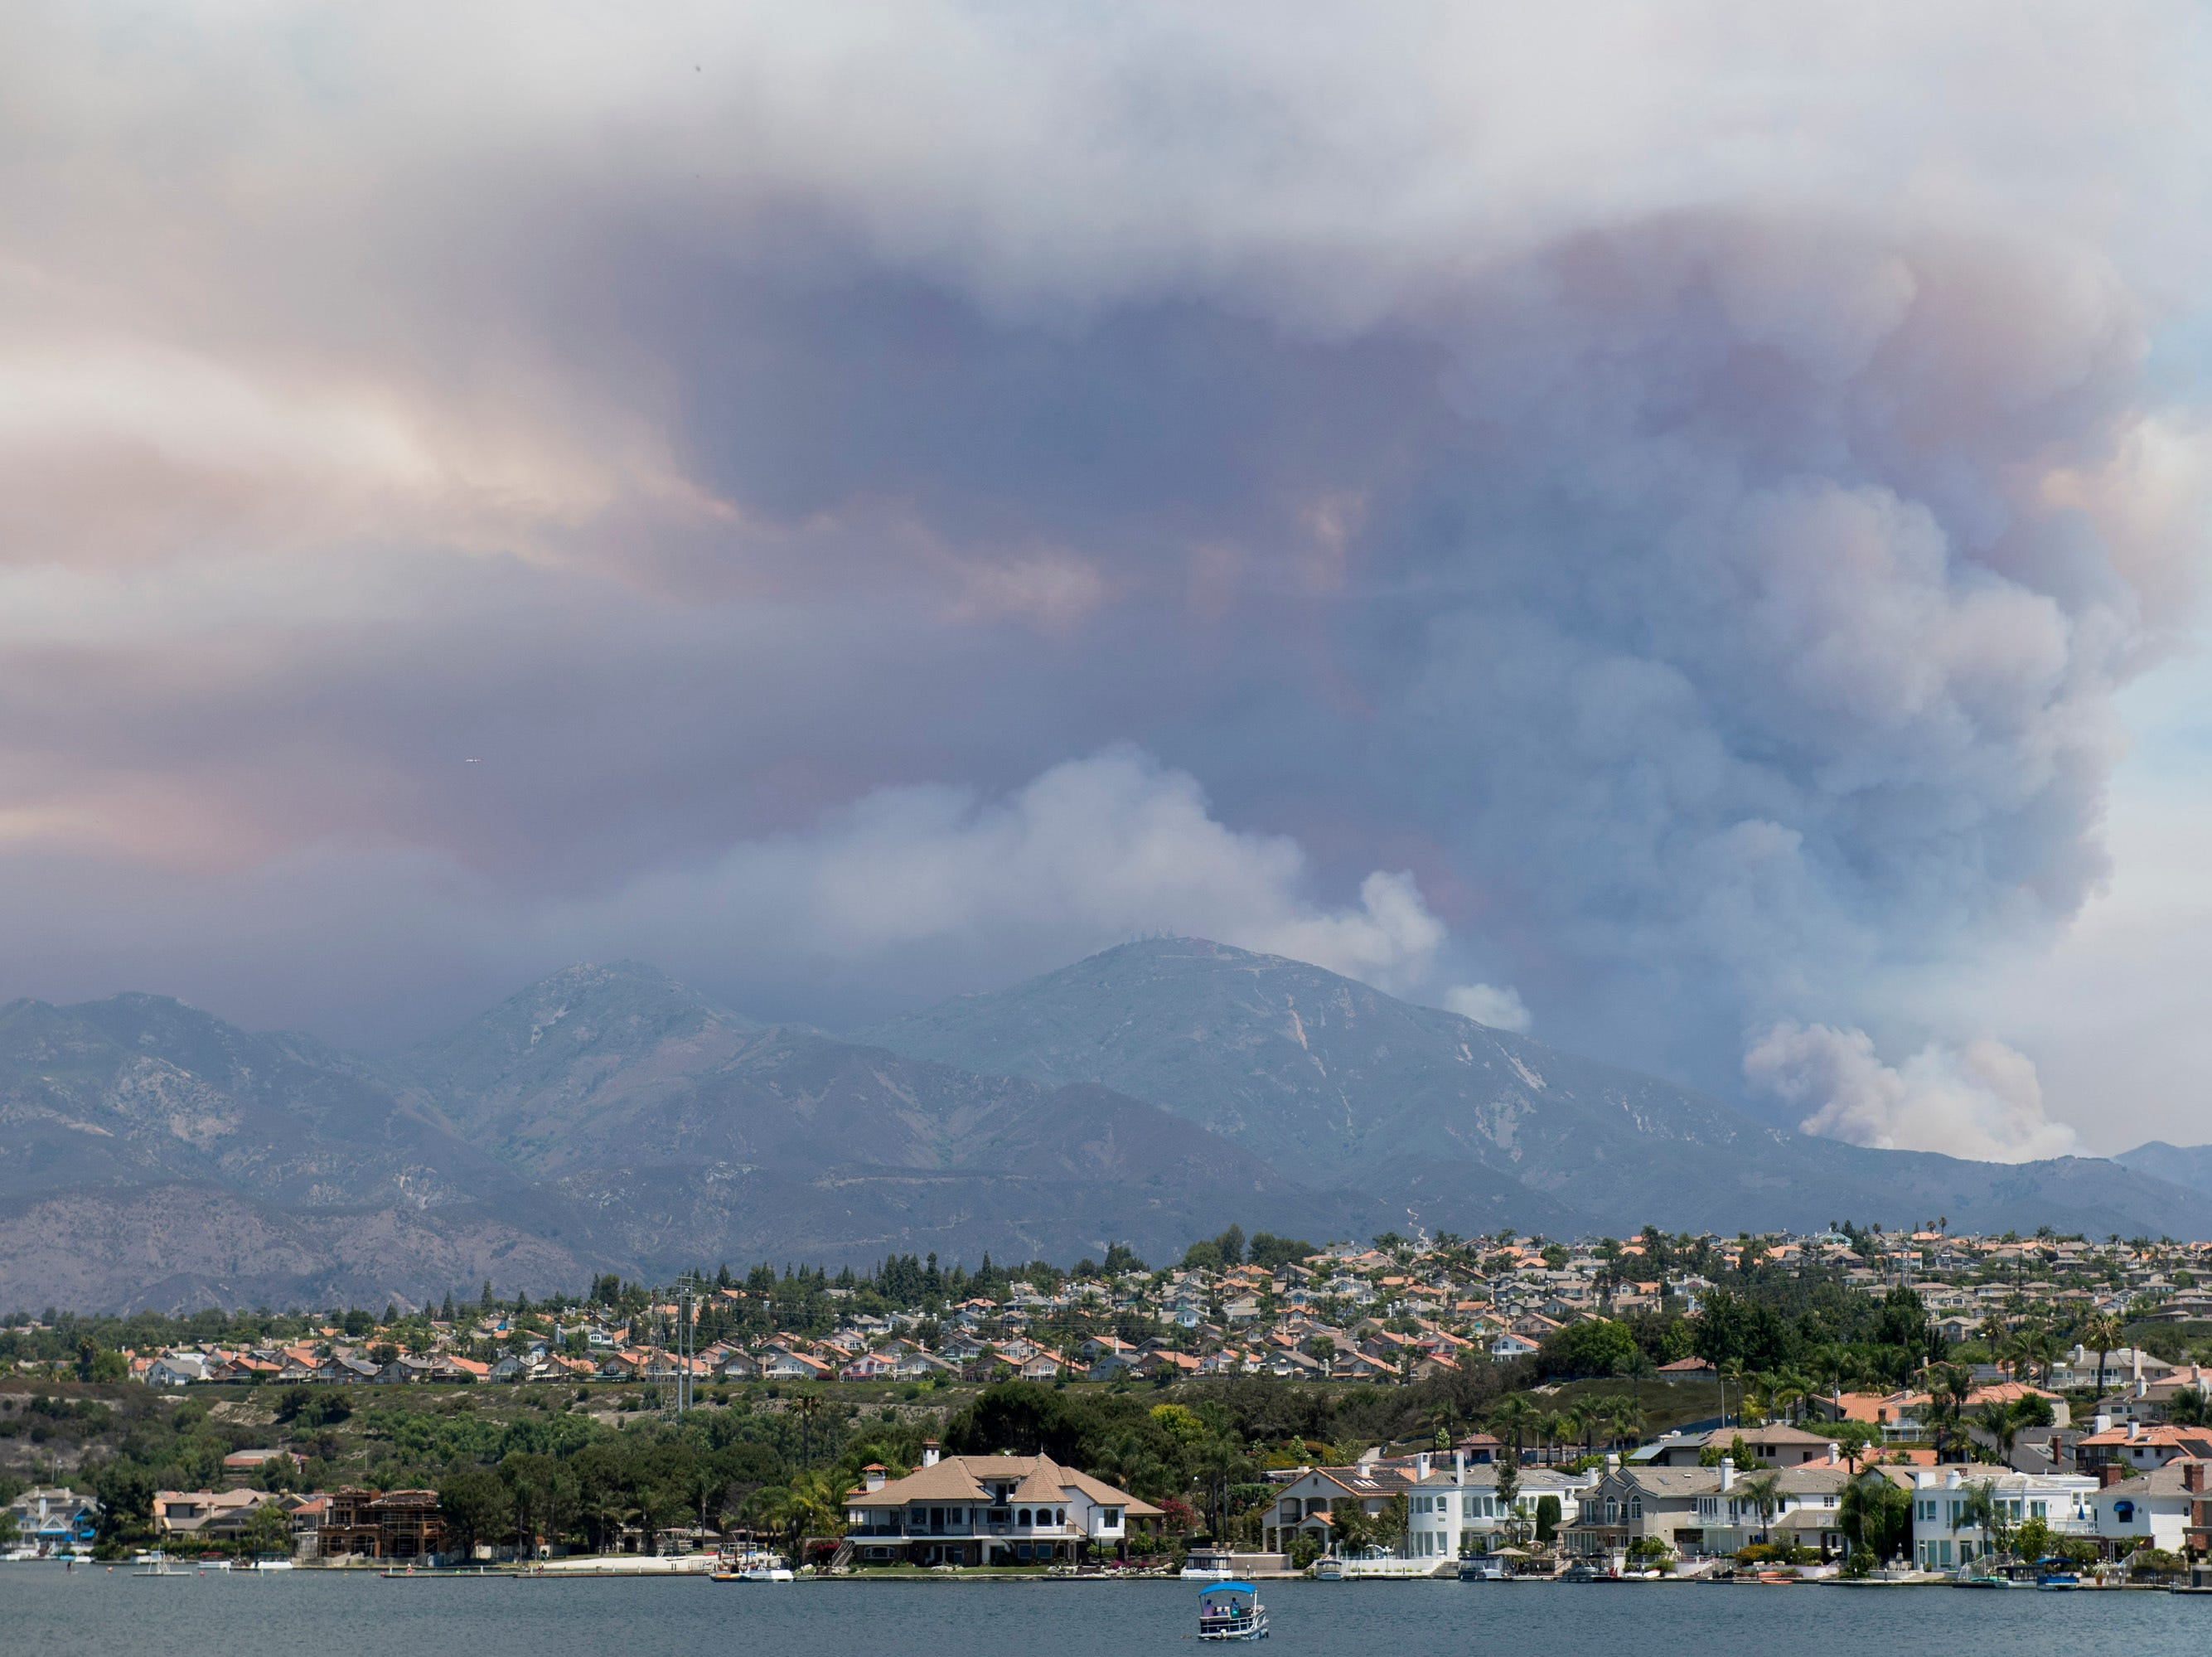 """A boat floats on Lake Mission Viejo as the """"Holy Fire"""" burns in the mountains behind Mission Viejo, Calif., on Wednesday, Aug. 8, 2018. (Kevin Sullivan/The Orange County Register via AP)"""